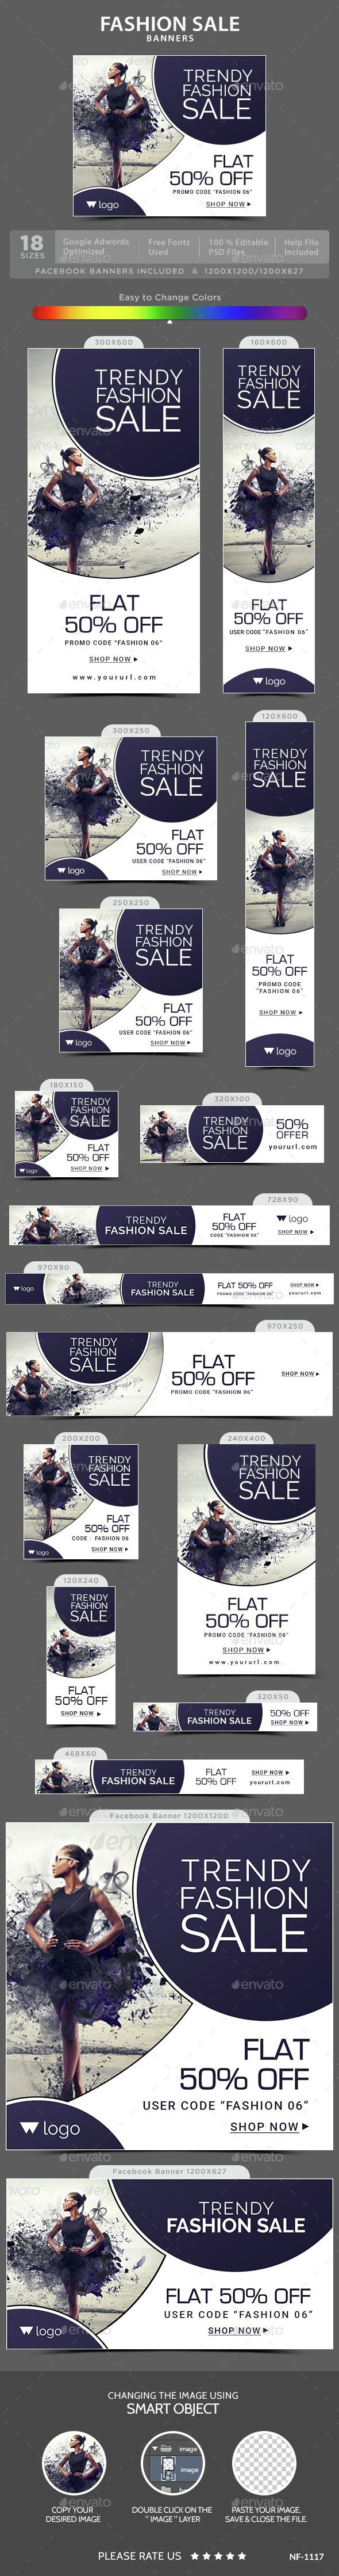 Fashion Sale Web Banners Template PSD. Download here: http://graphicriver.net/item/fashion-sale-banners/15023462?ref=ksioks